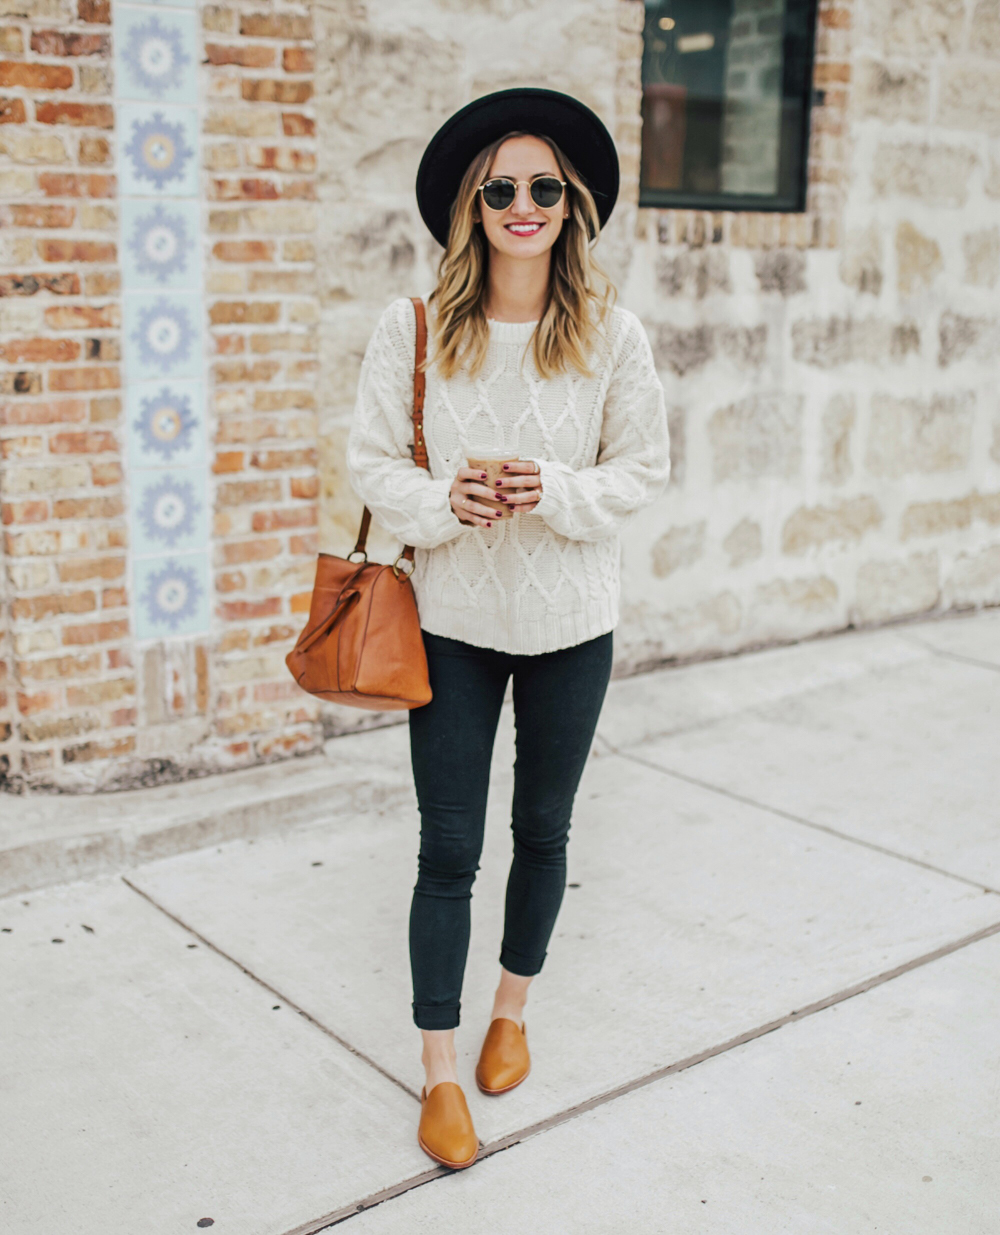 livvyland-blog-olivia-watson-fall-outfit-cable-knit-sweater-black-skinny-jeans